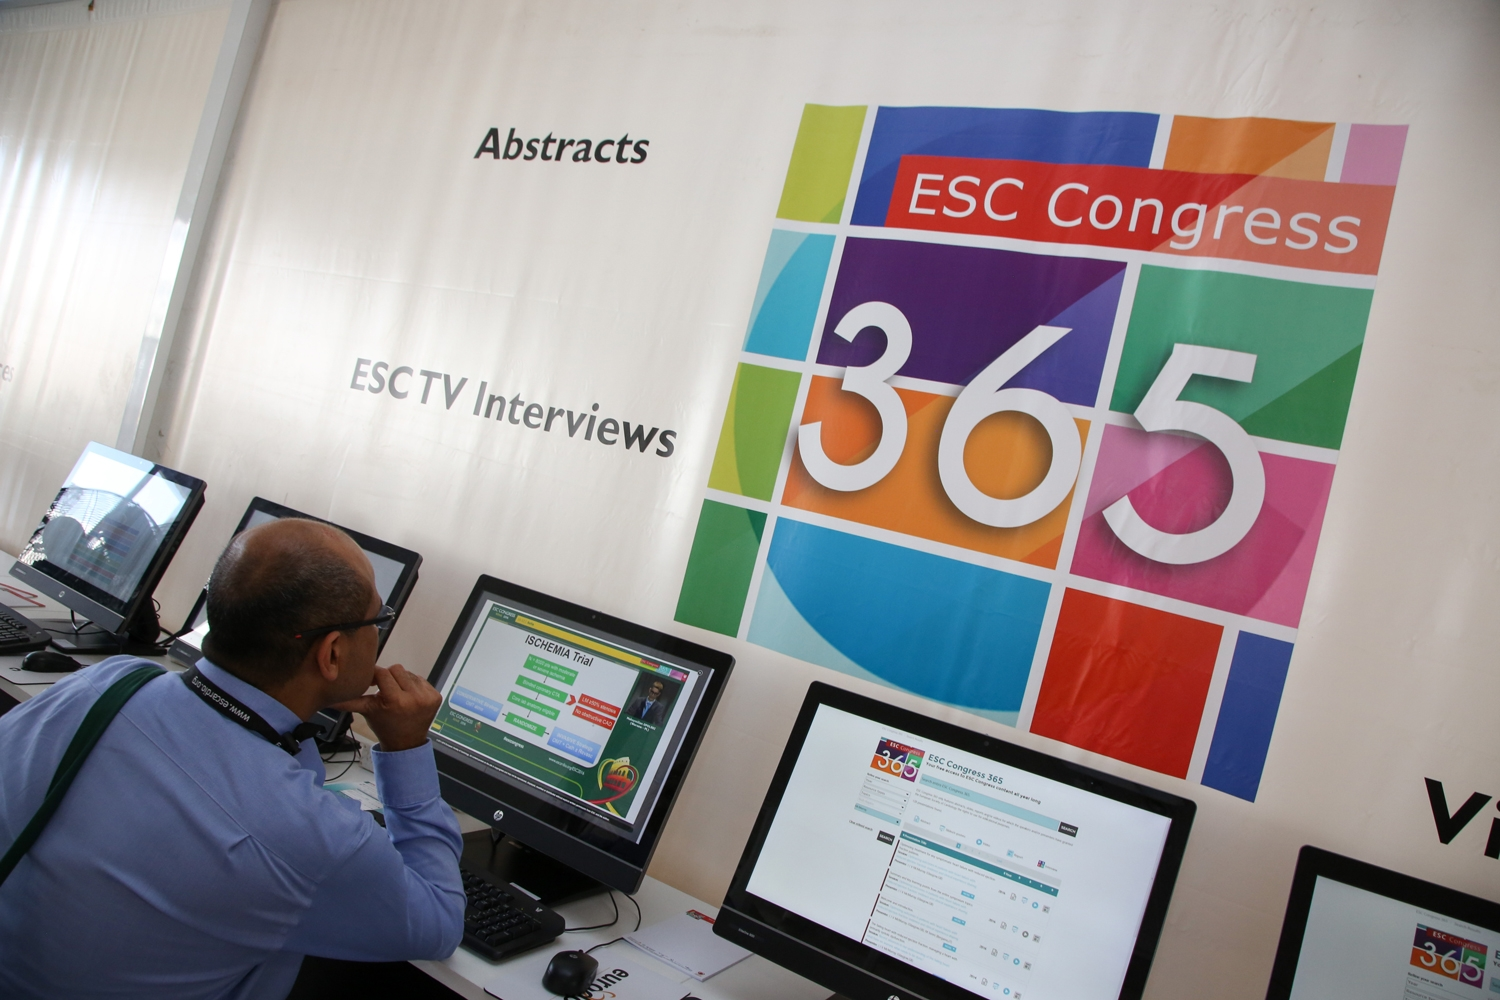 ESC Congress 365 - Nursing